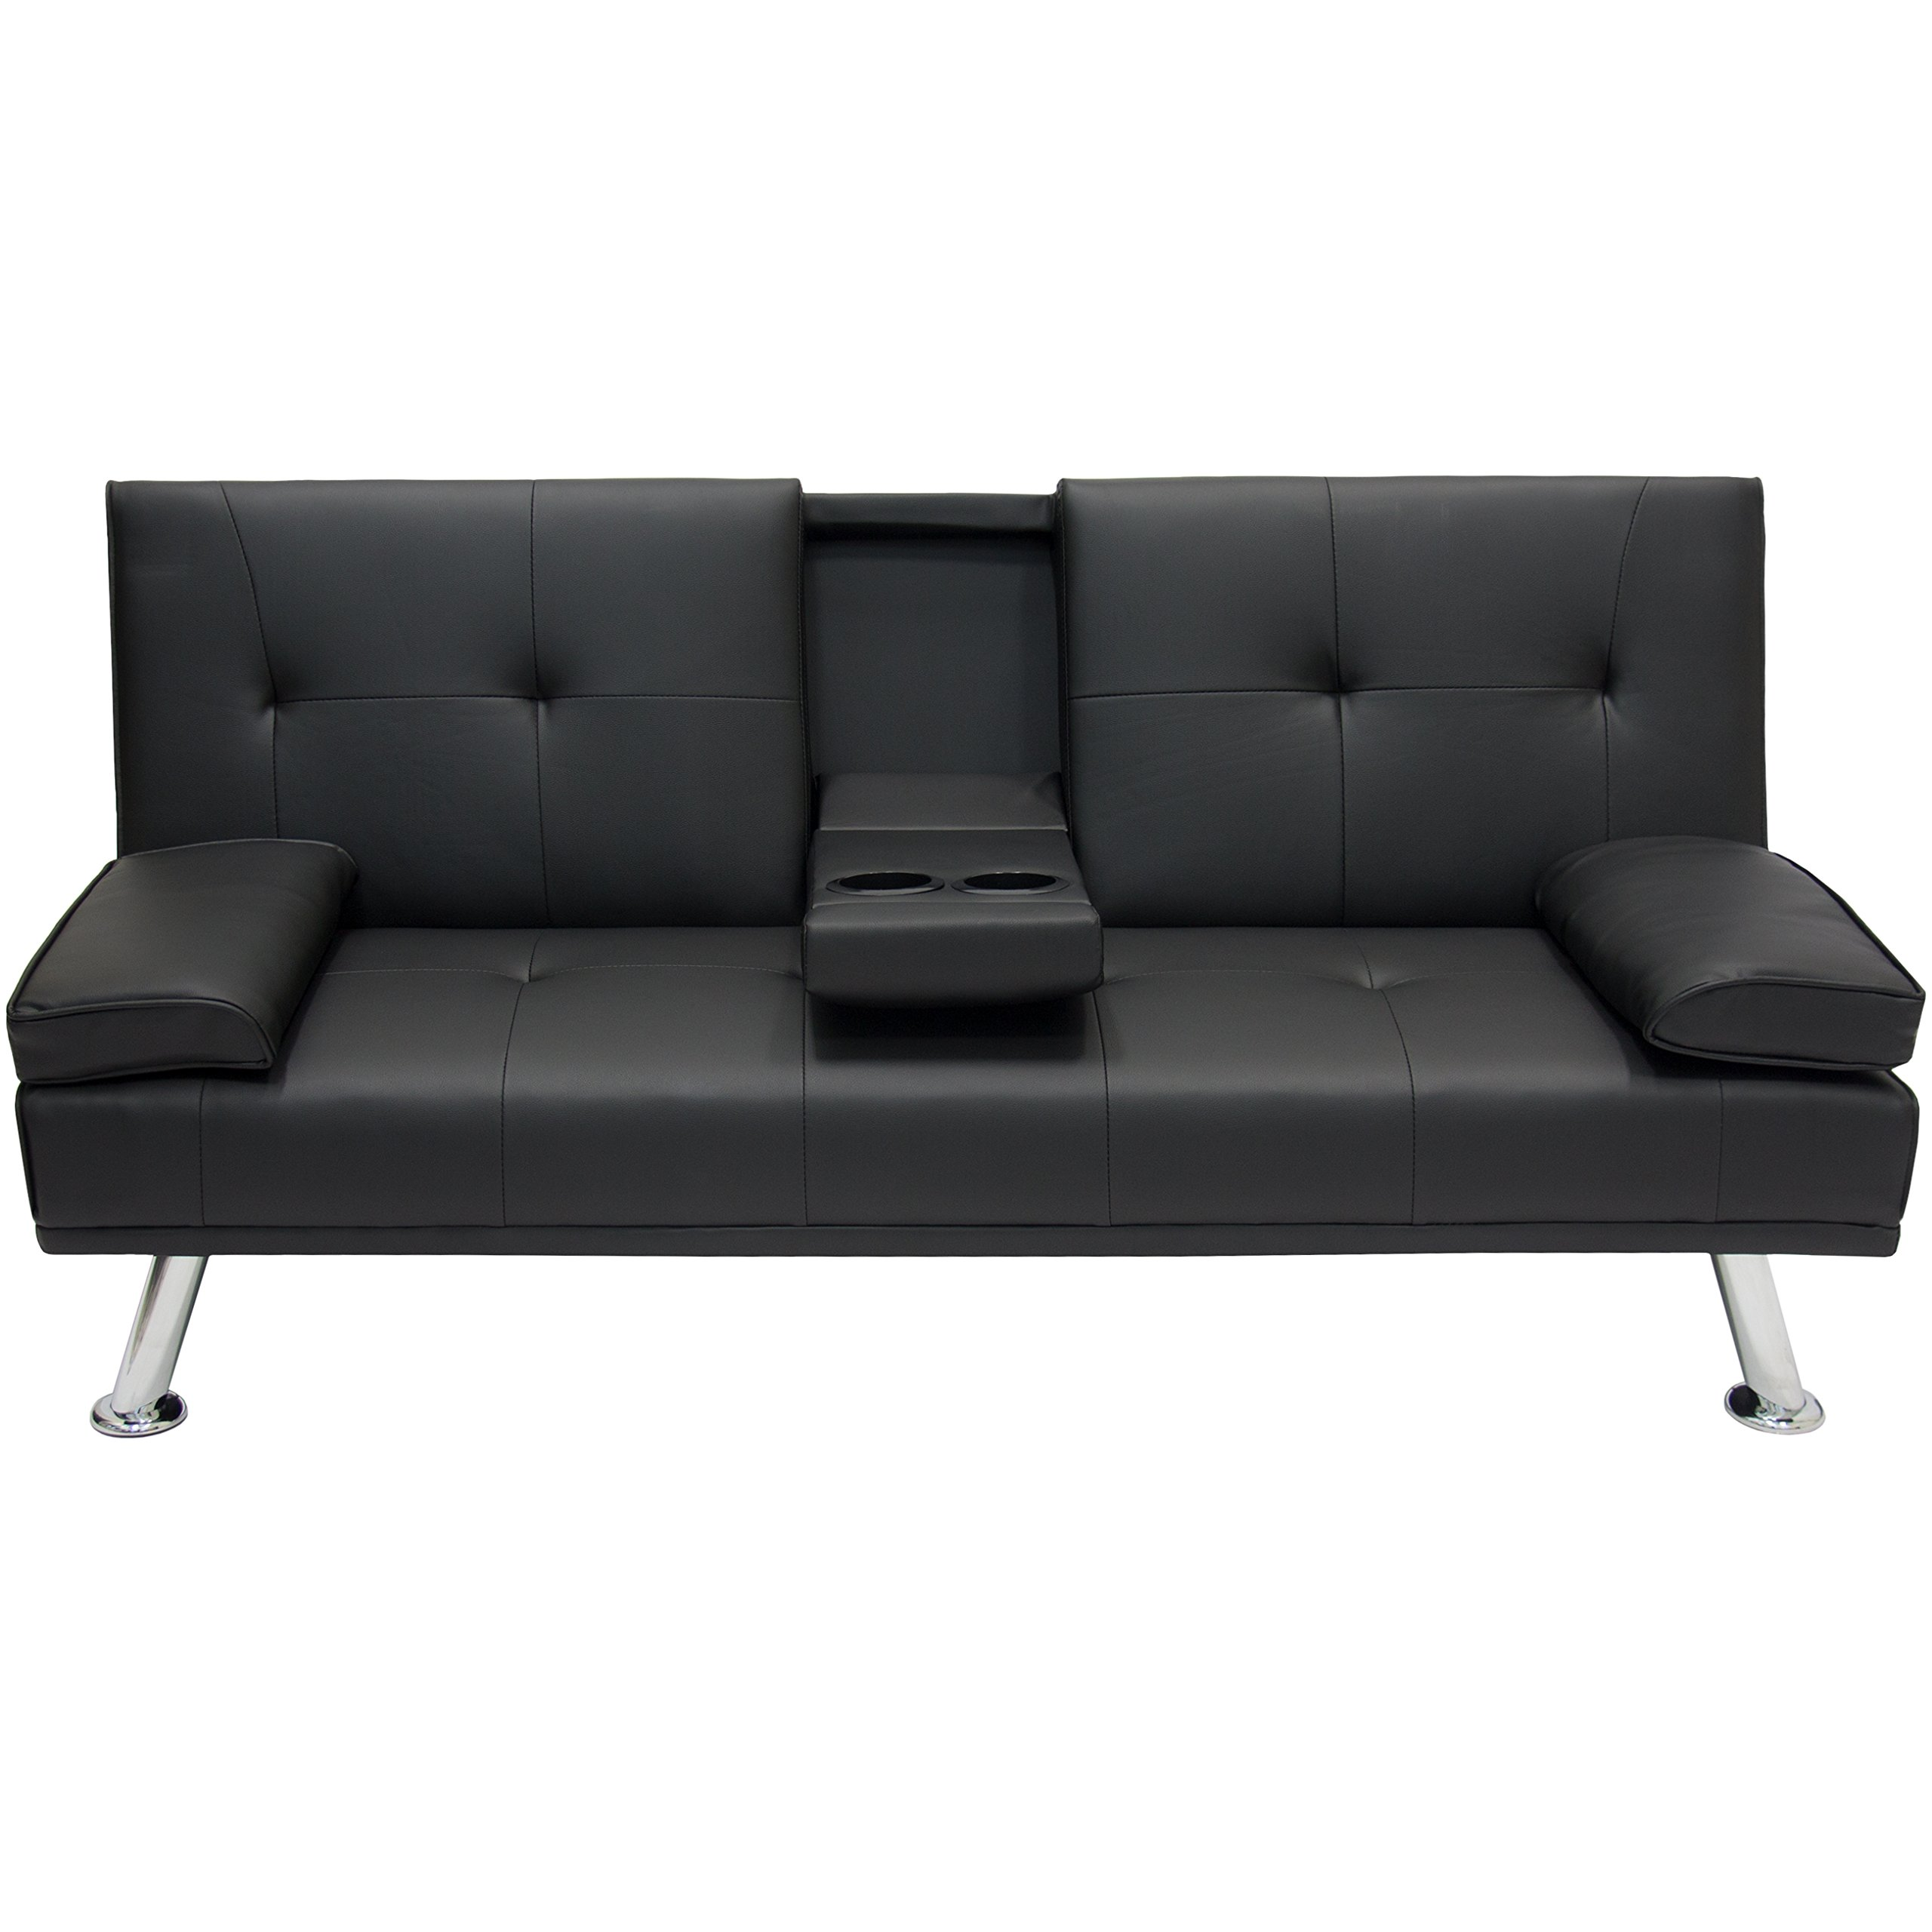 Best Choice Products Modern Entertainment Futon Sofa Bed Fold Up & Down Recliner Couch With Cup Holders Furniture by Best Choice Products